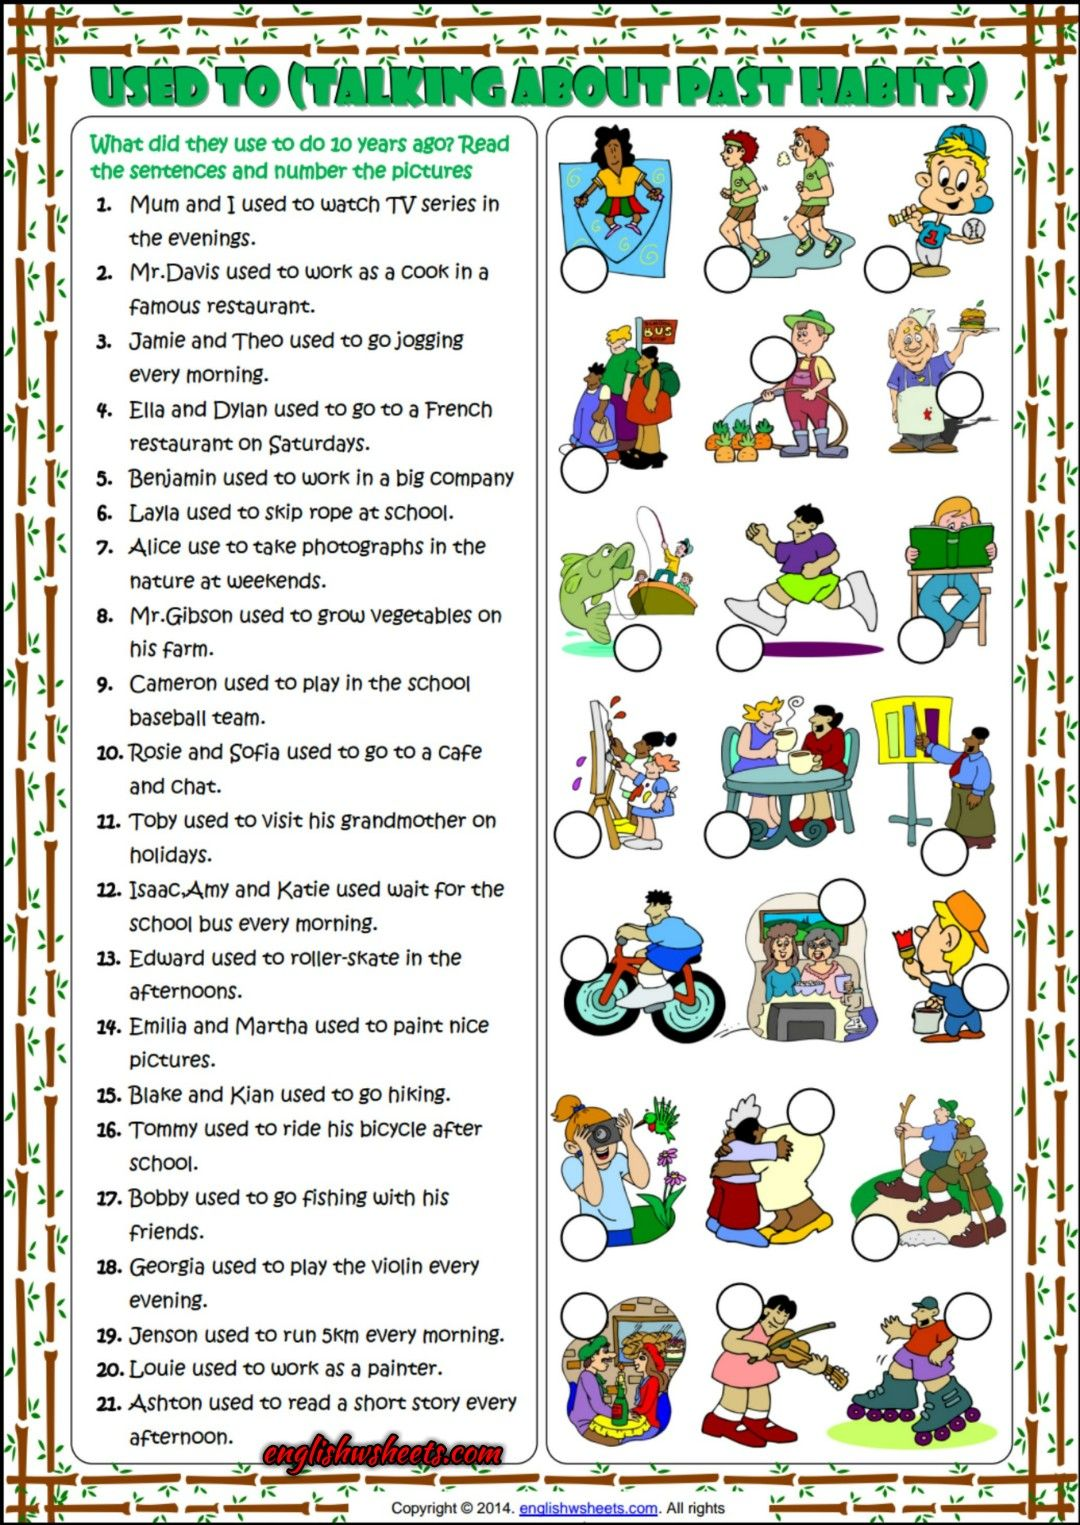 Used To Past Habits Matching Exercise Esl Worksheet Esl Worksheets English Teaching Materials English Lessons [ 1525 x 1080 Pixel ]